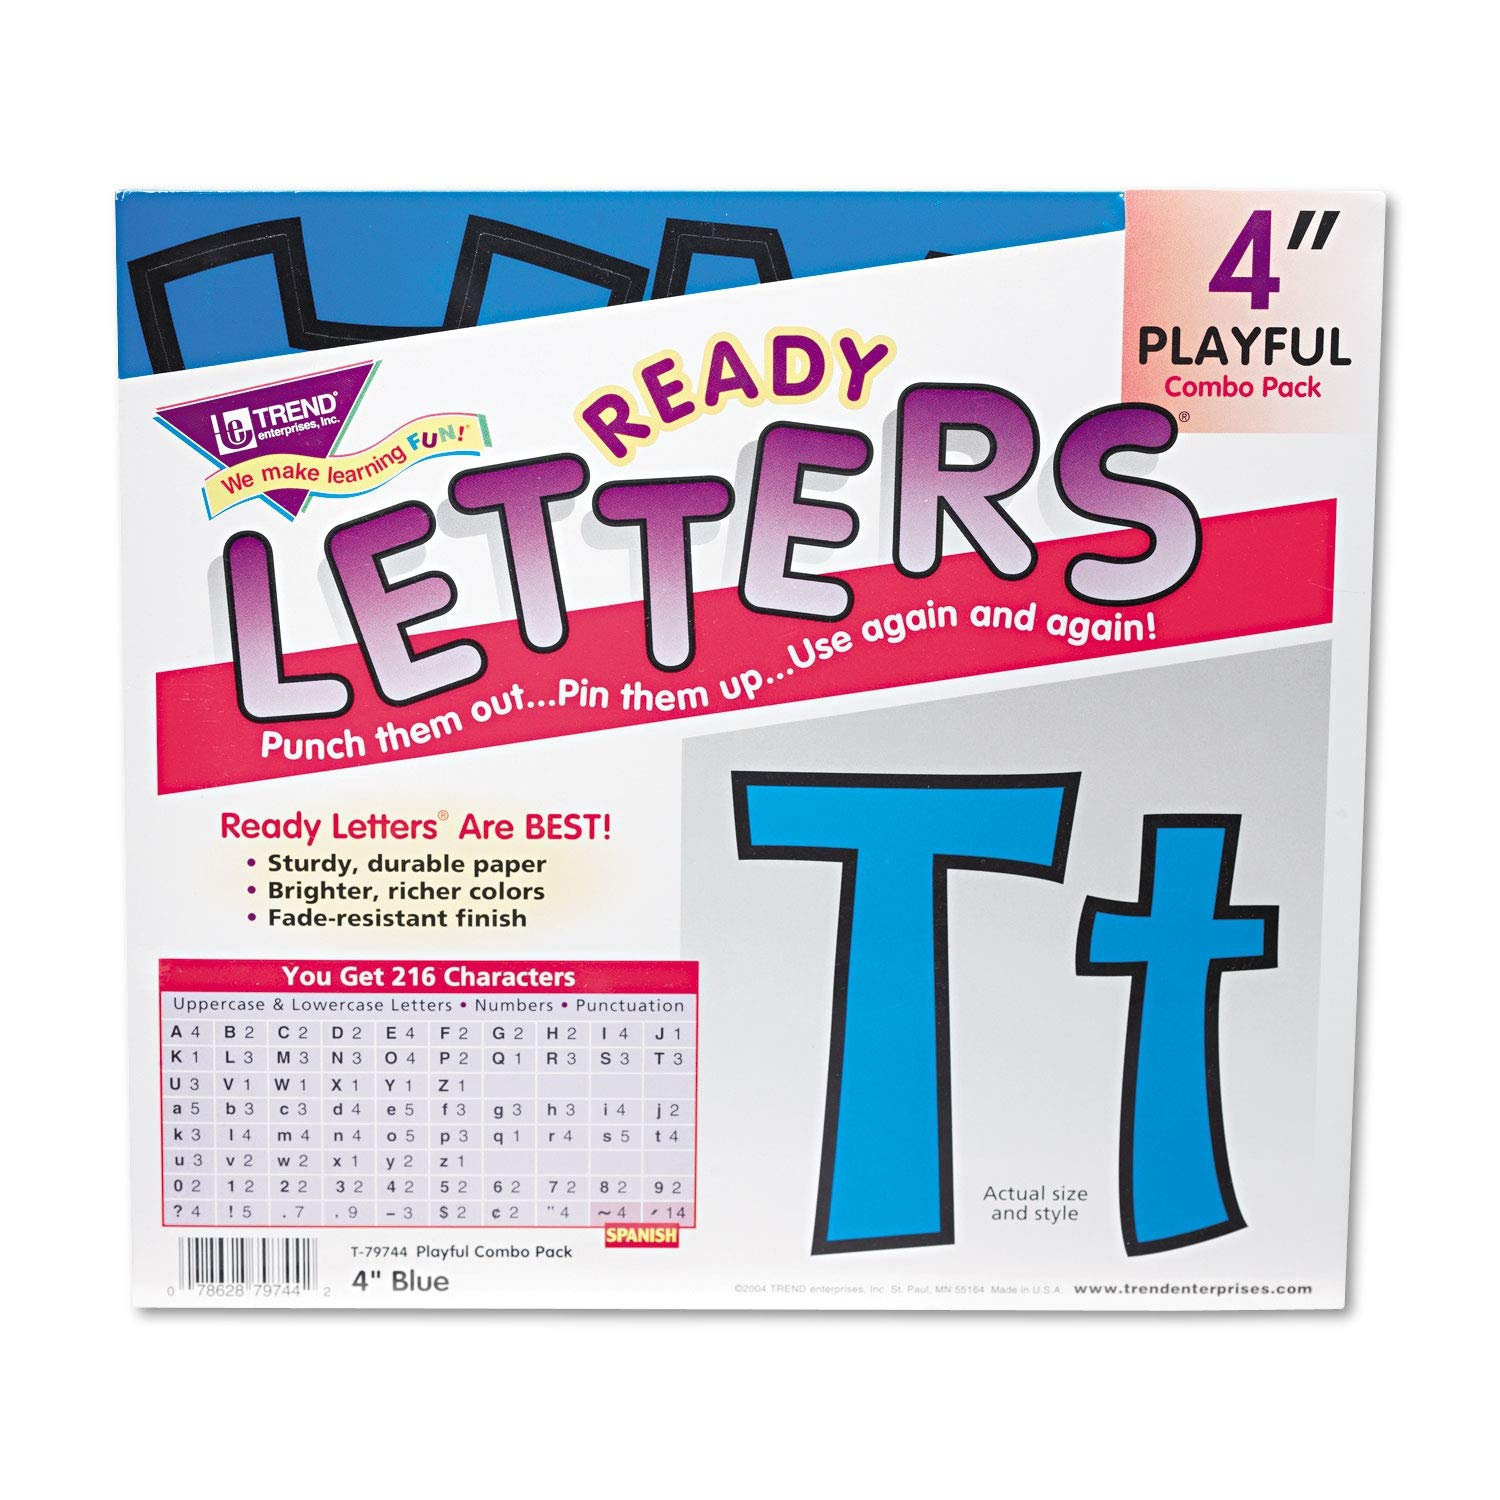 TREND Ready Letters Playful Combo Set, Blue, 4h, 216/Set - T79744 Pack of 2